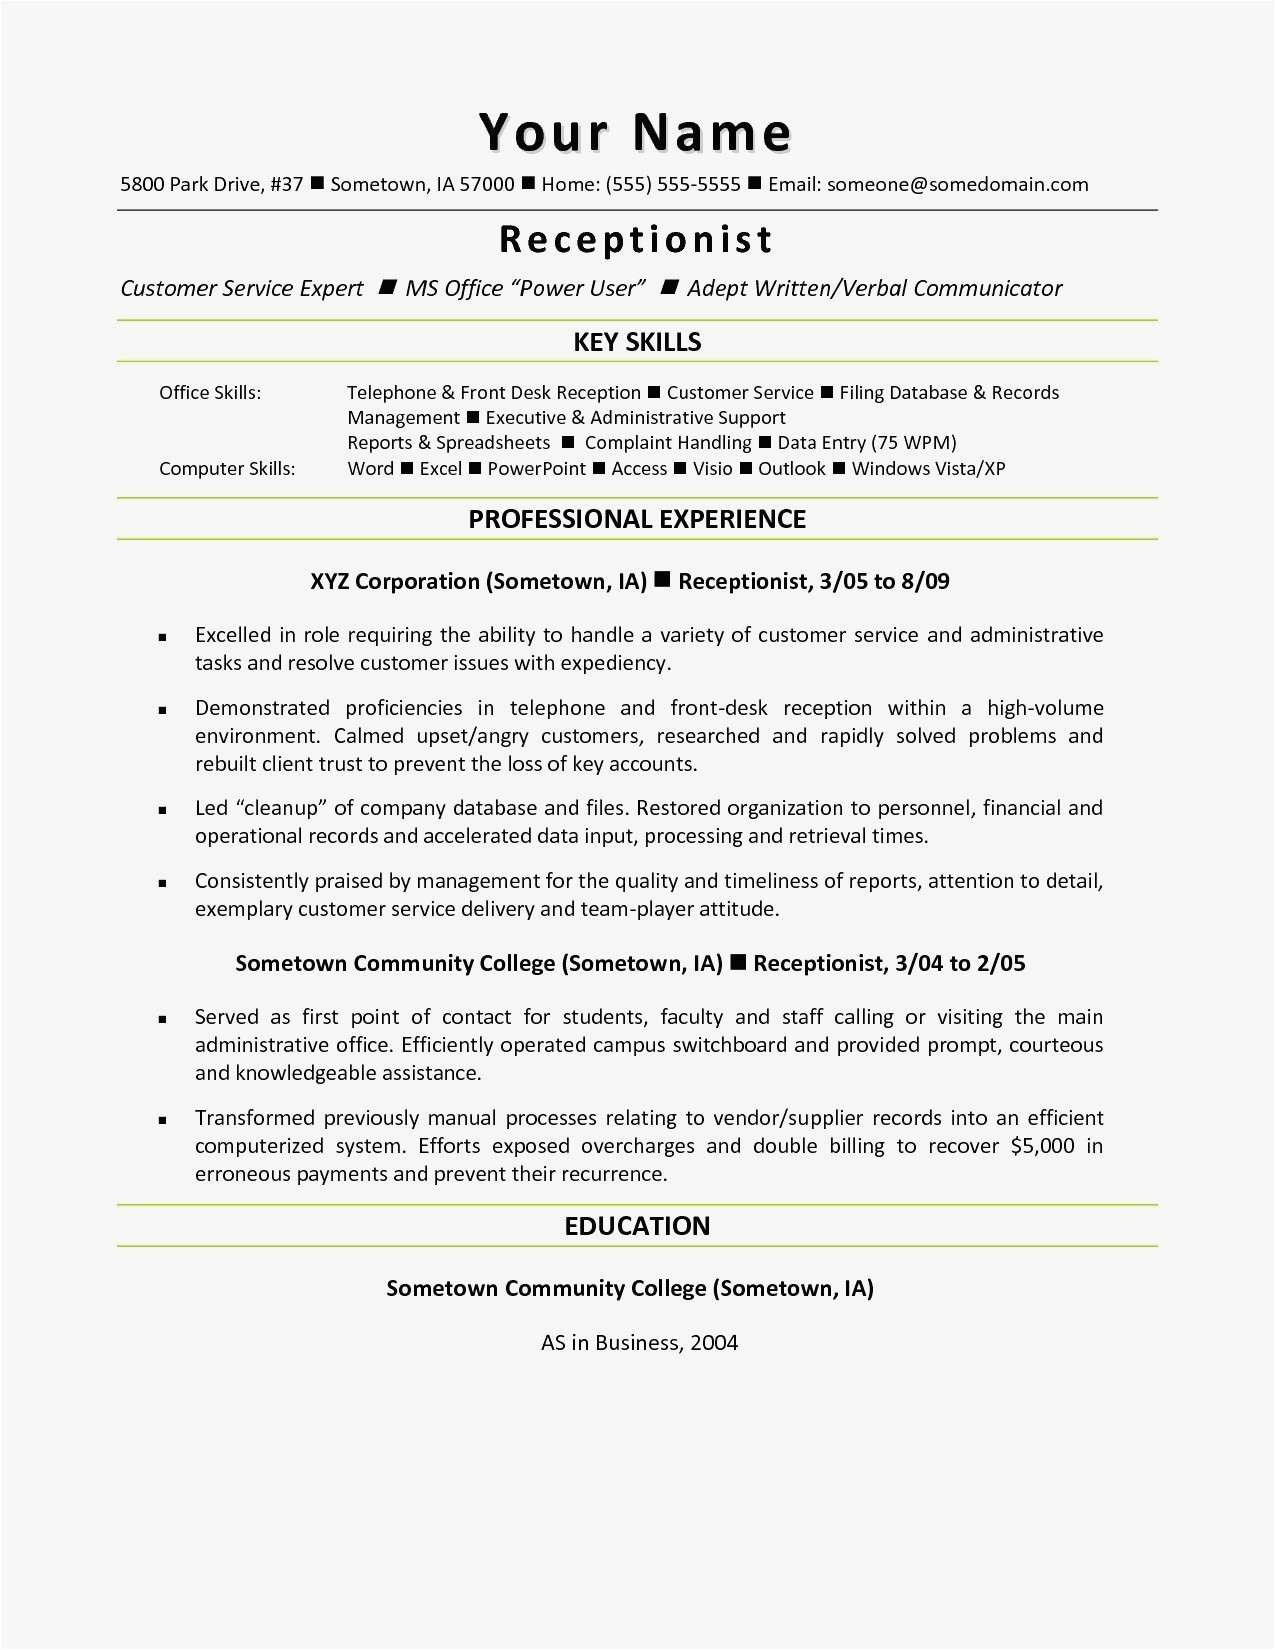 Front Desk Resume Template - Arashkdesign Wp Content 2018 11 30 Let